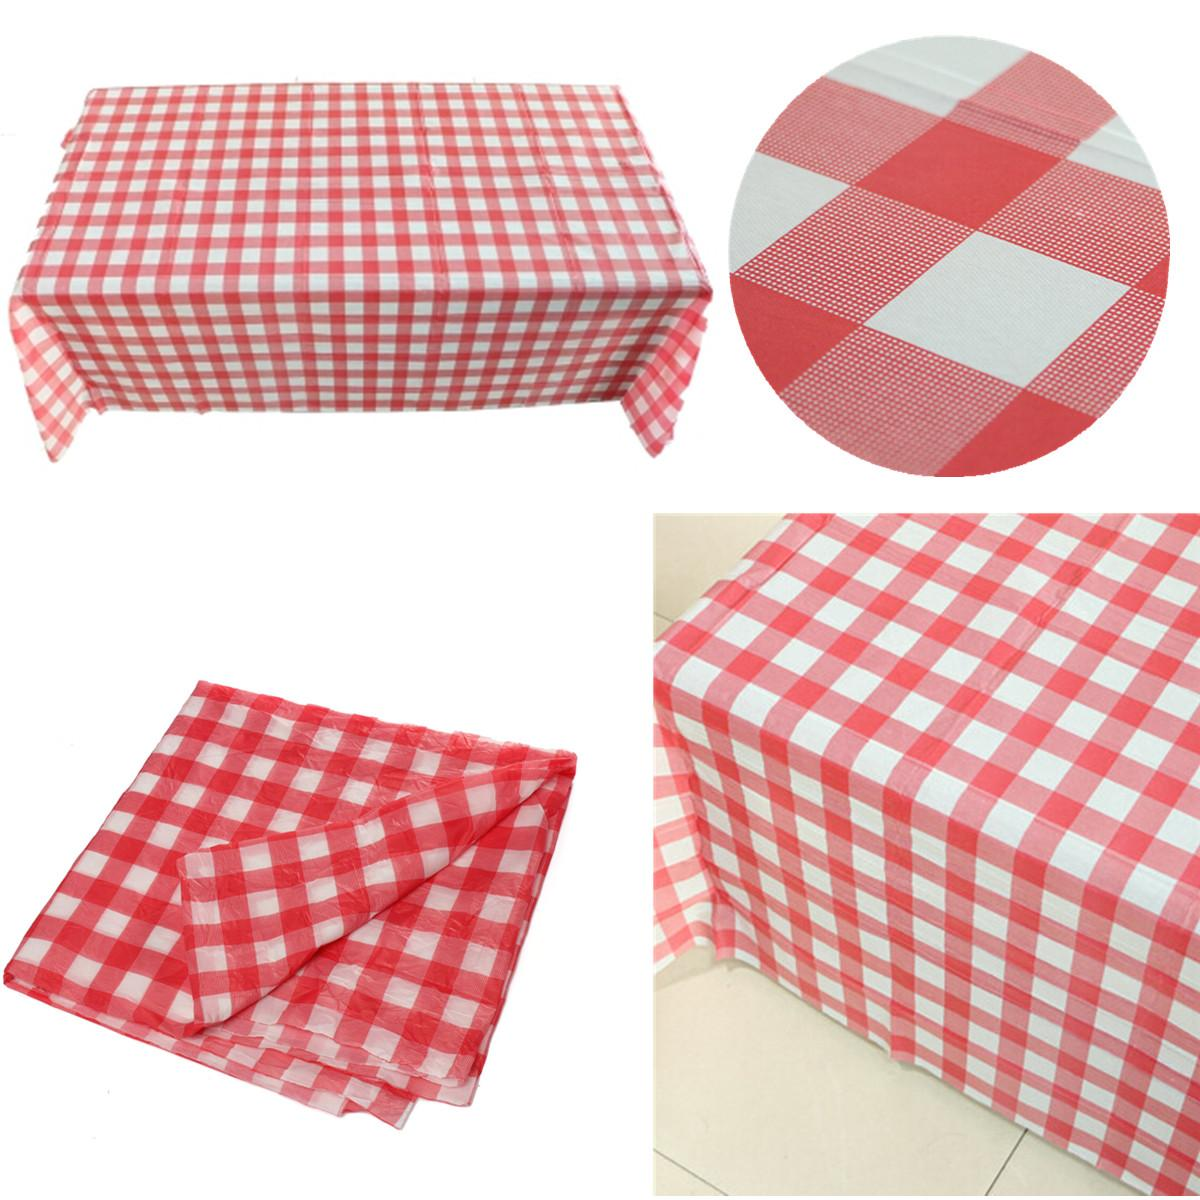 Cool Us 1 45 42 Off Red Gingham Plastic Disposable Check Tablecloth Tablecover 160X160Cm Party Outdoor Picnic Used For Tablecloths Chair Covers In Andrewgaddart Wooden Chair Designs For Living Room Andrewgaddartcom